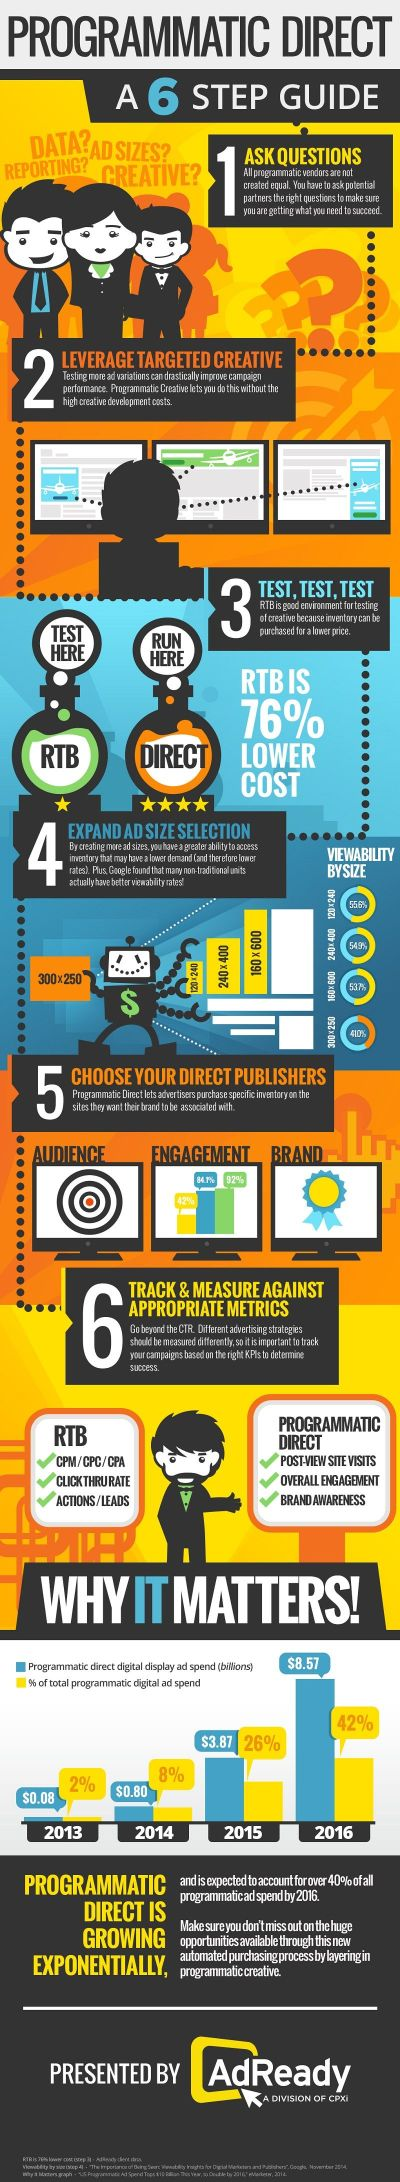 Advertising - A Six-Step Guide to Programmatic Direct [Infographic] : MarketingProfs Article